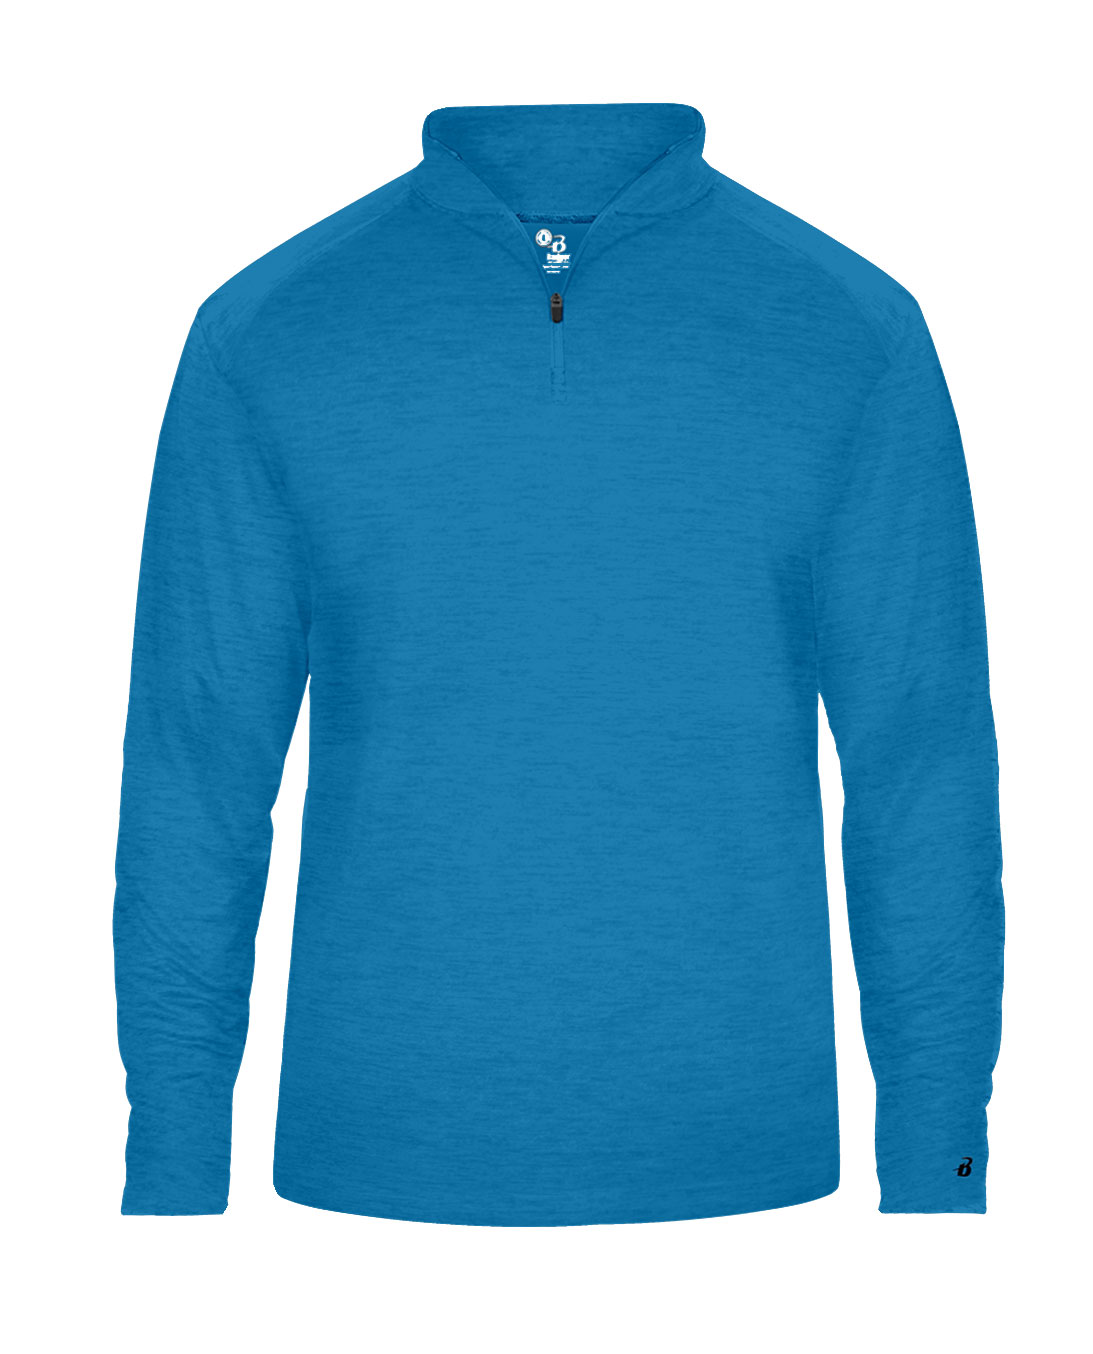 Badger Mens Tonal Blend 1/4 Zip